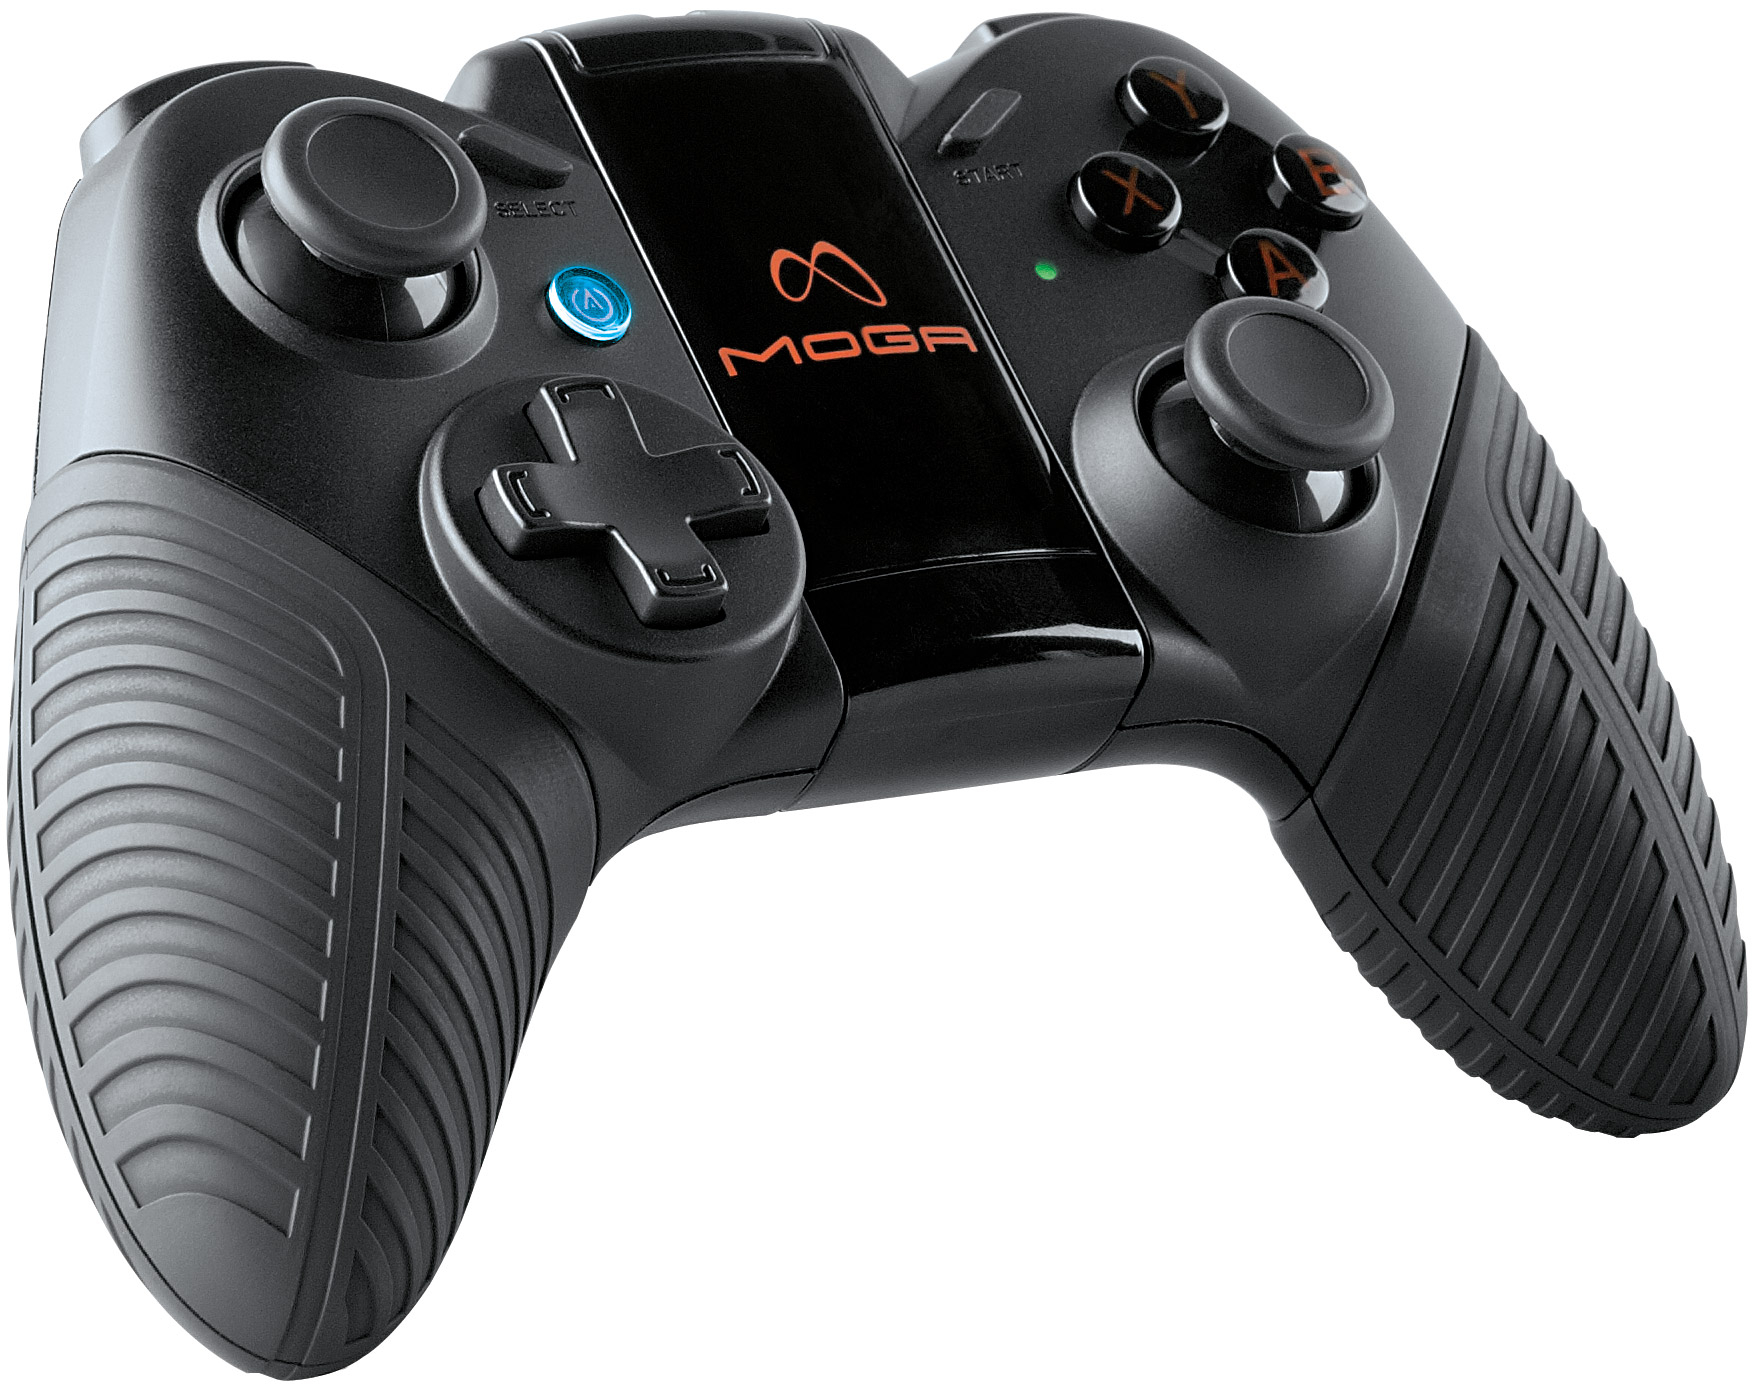 Modojo | MOGA Pro Controller Unveiled At CES